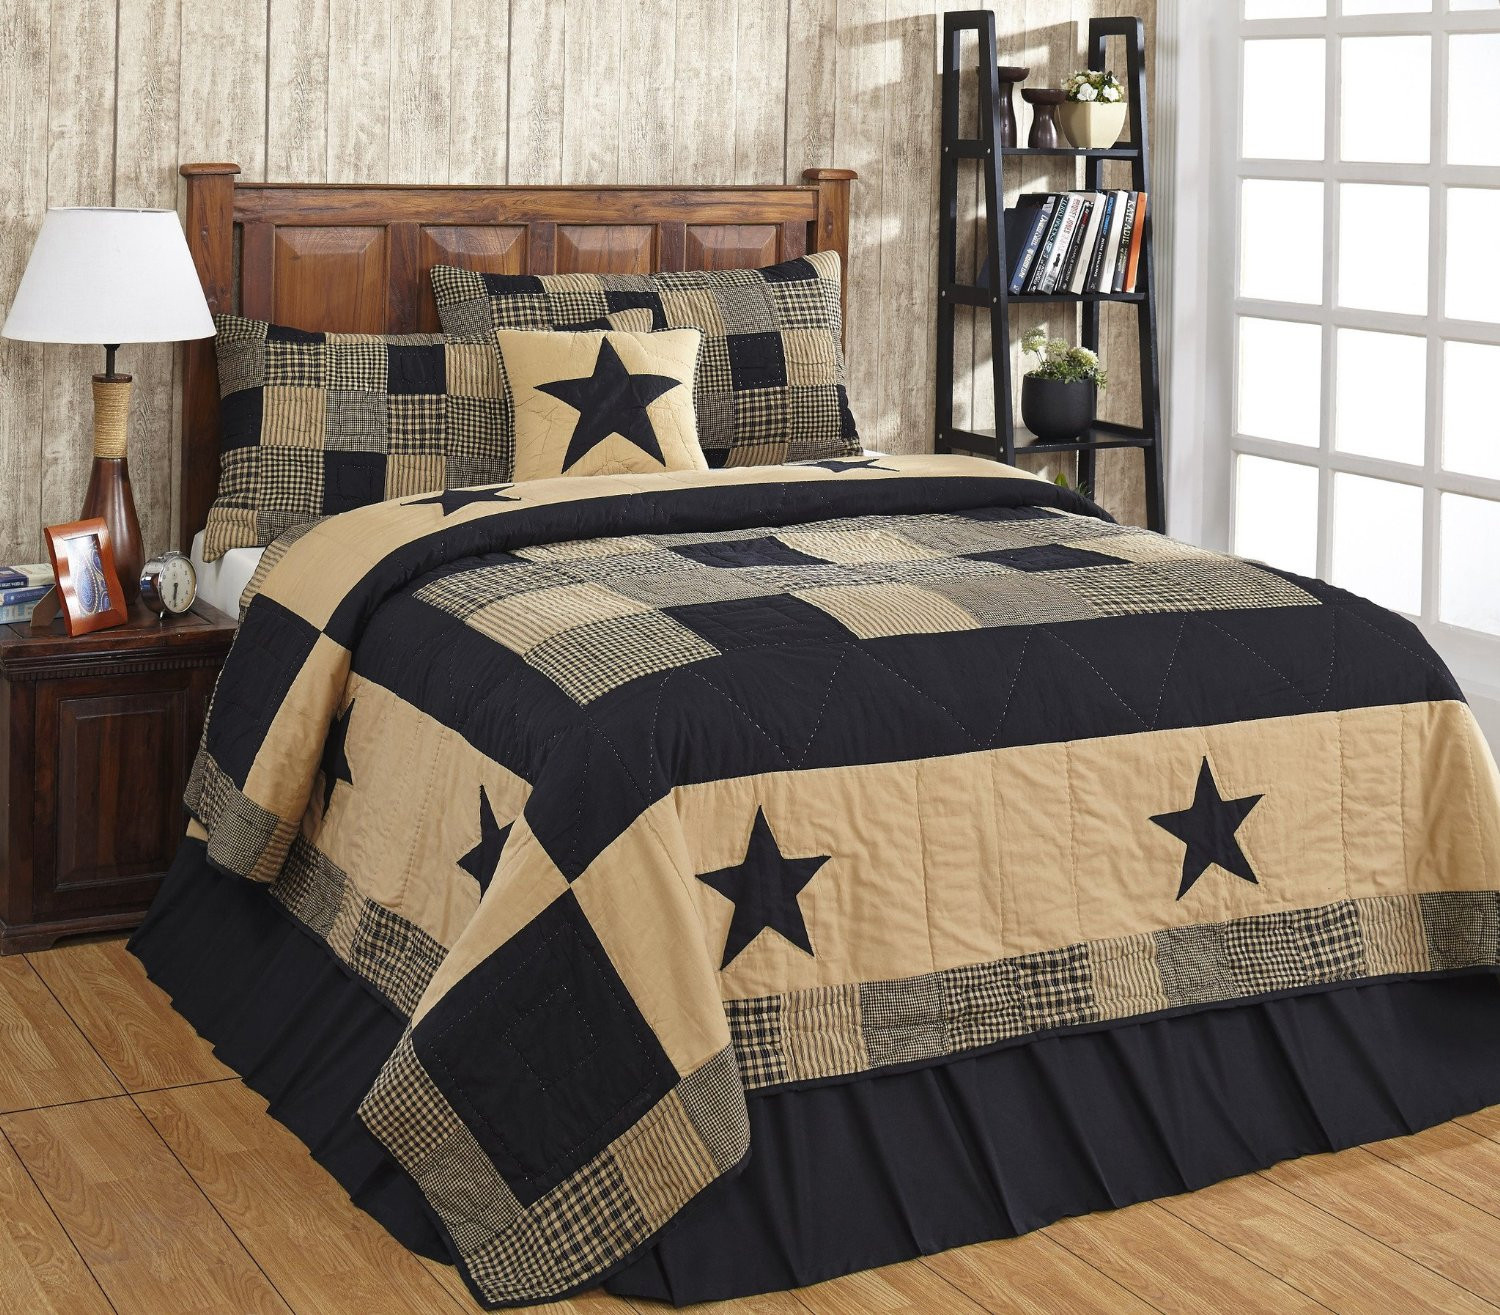 Jamestown Black Amp Tan By Olivias Heartland Quilts